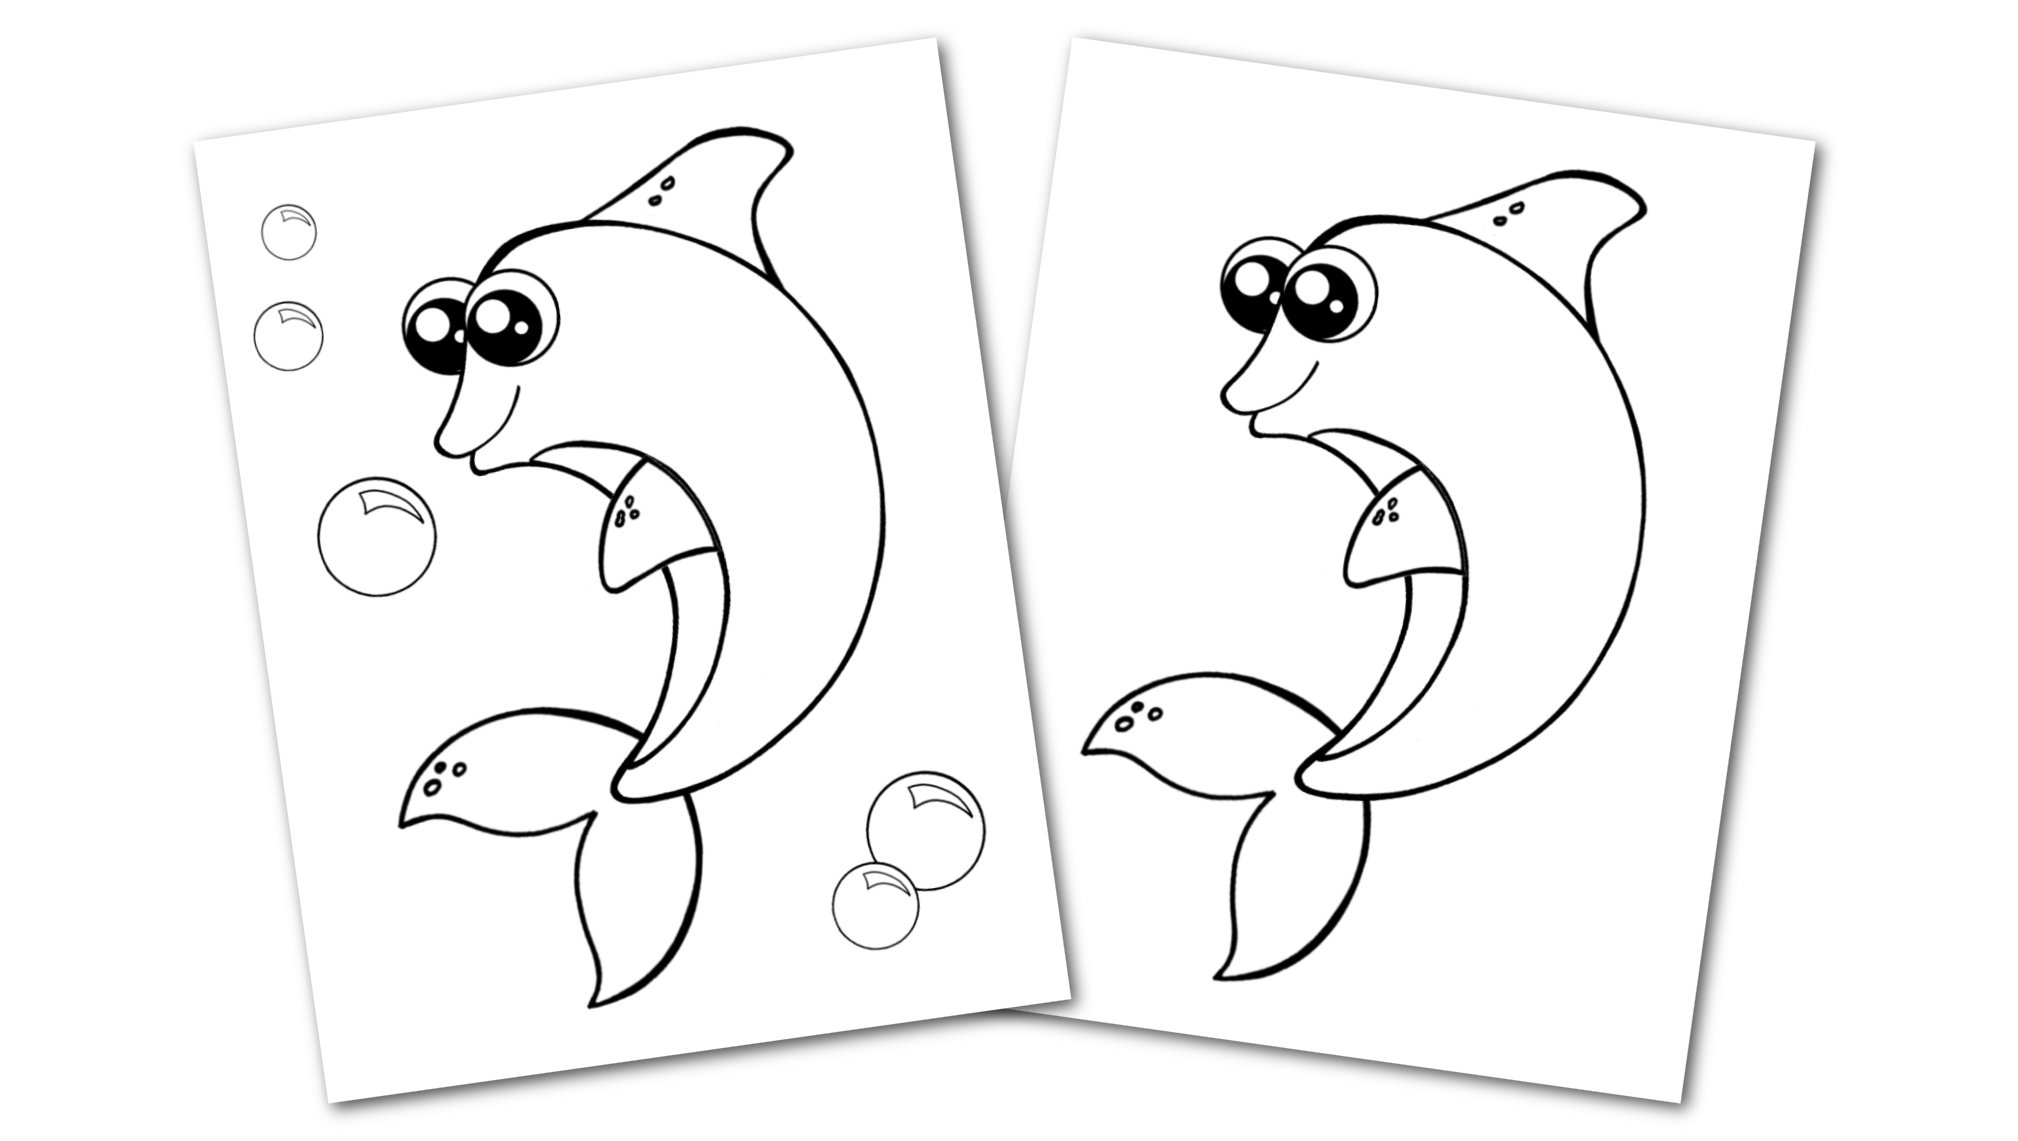 Free Printable Dolphin Ocean Animal Convertkit for Toddlers, Kids and Preschoolers